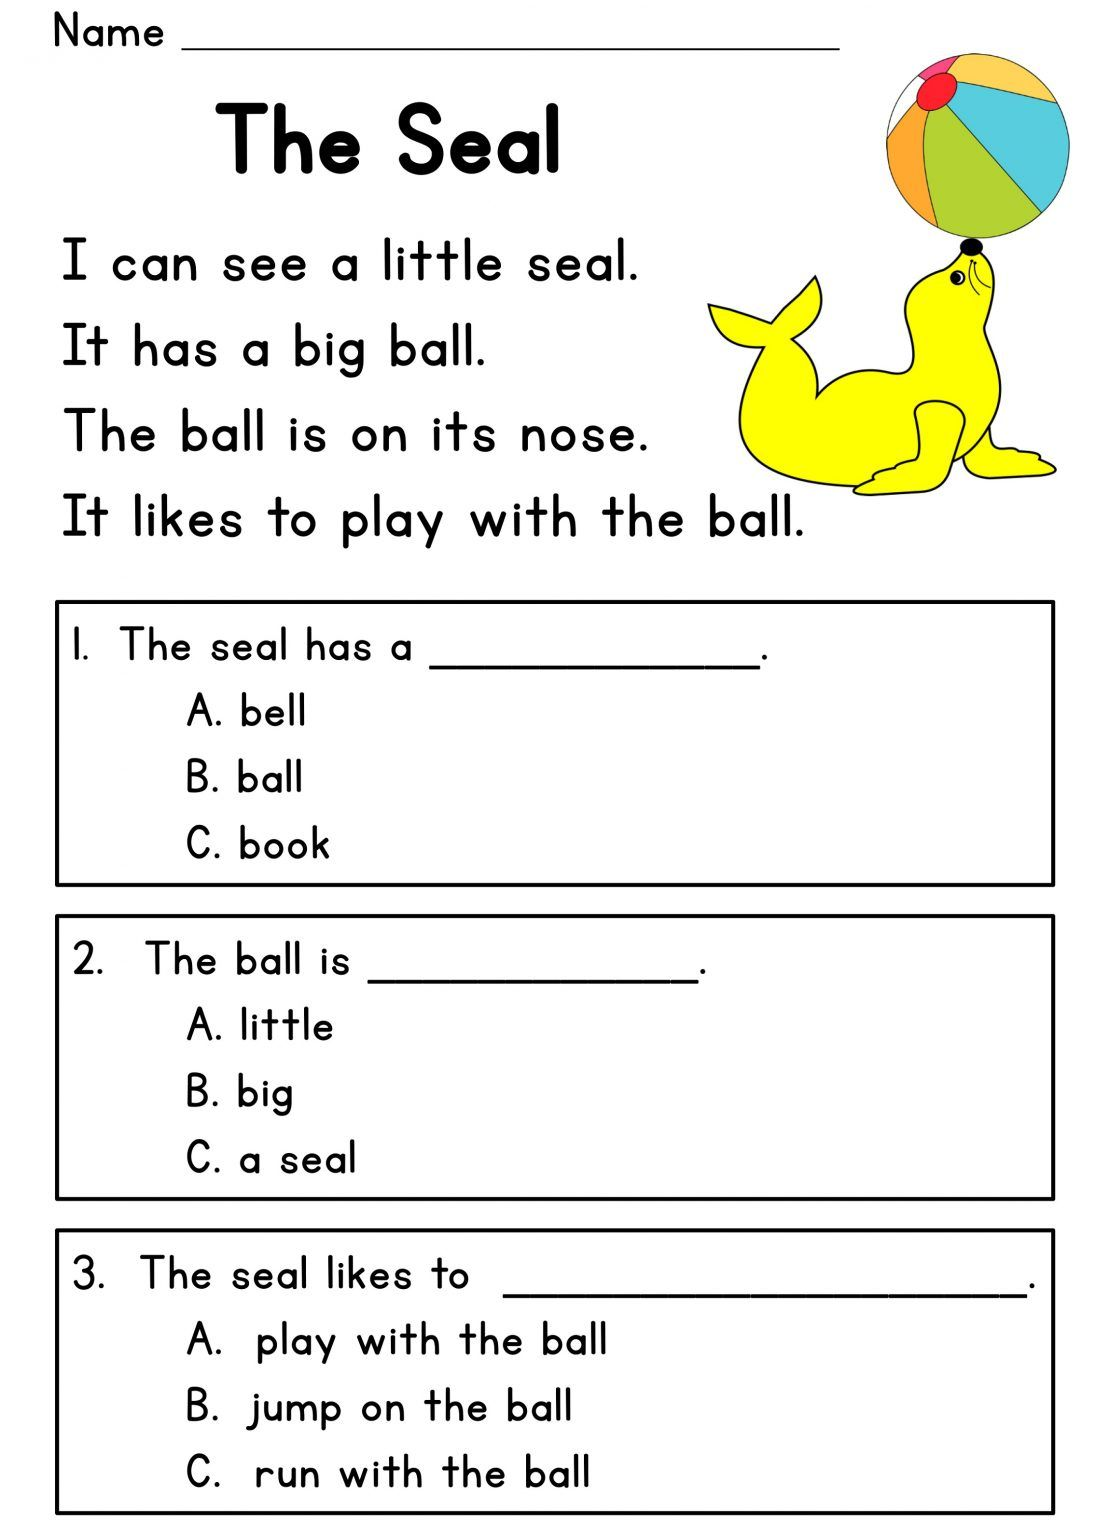 Free Printable Worksheets For 5 Year Olds